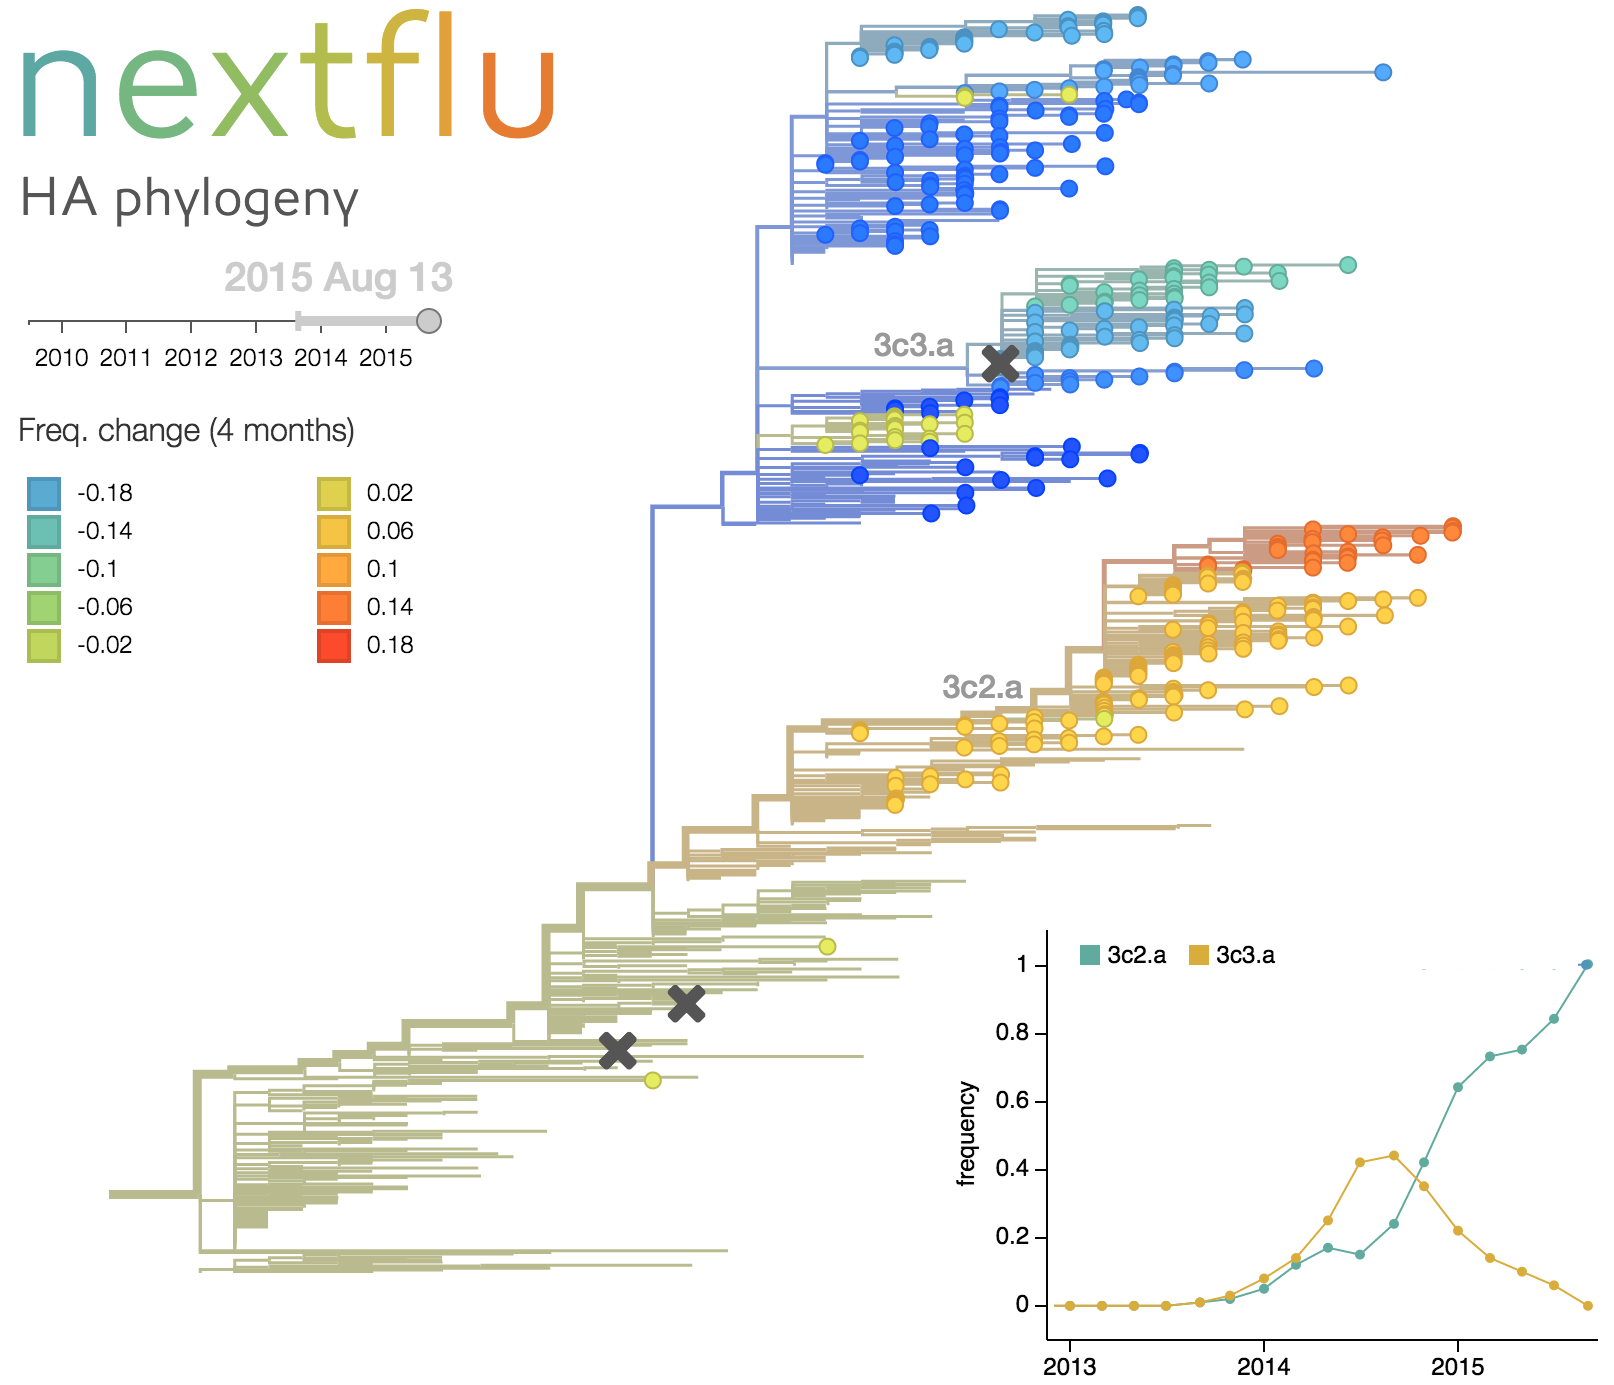 Phylogenetic analysis of influenza